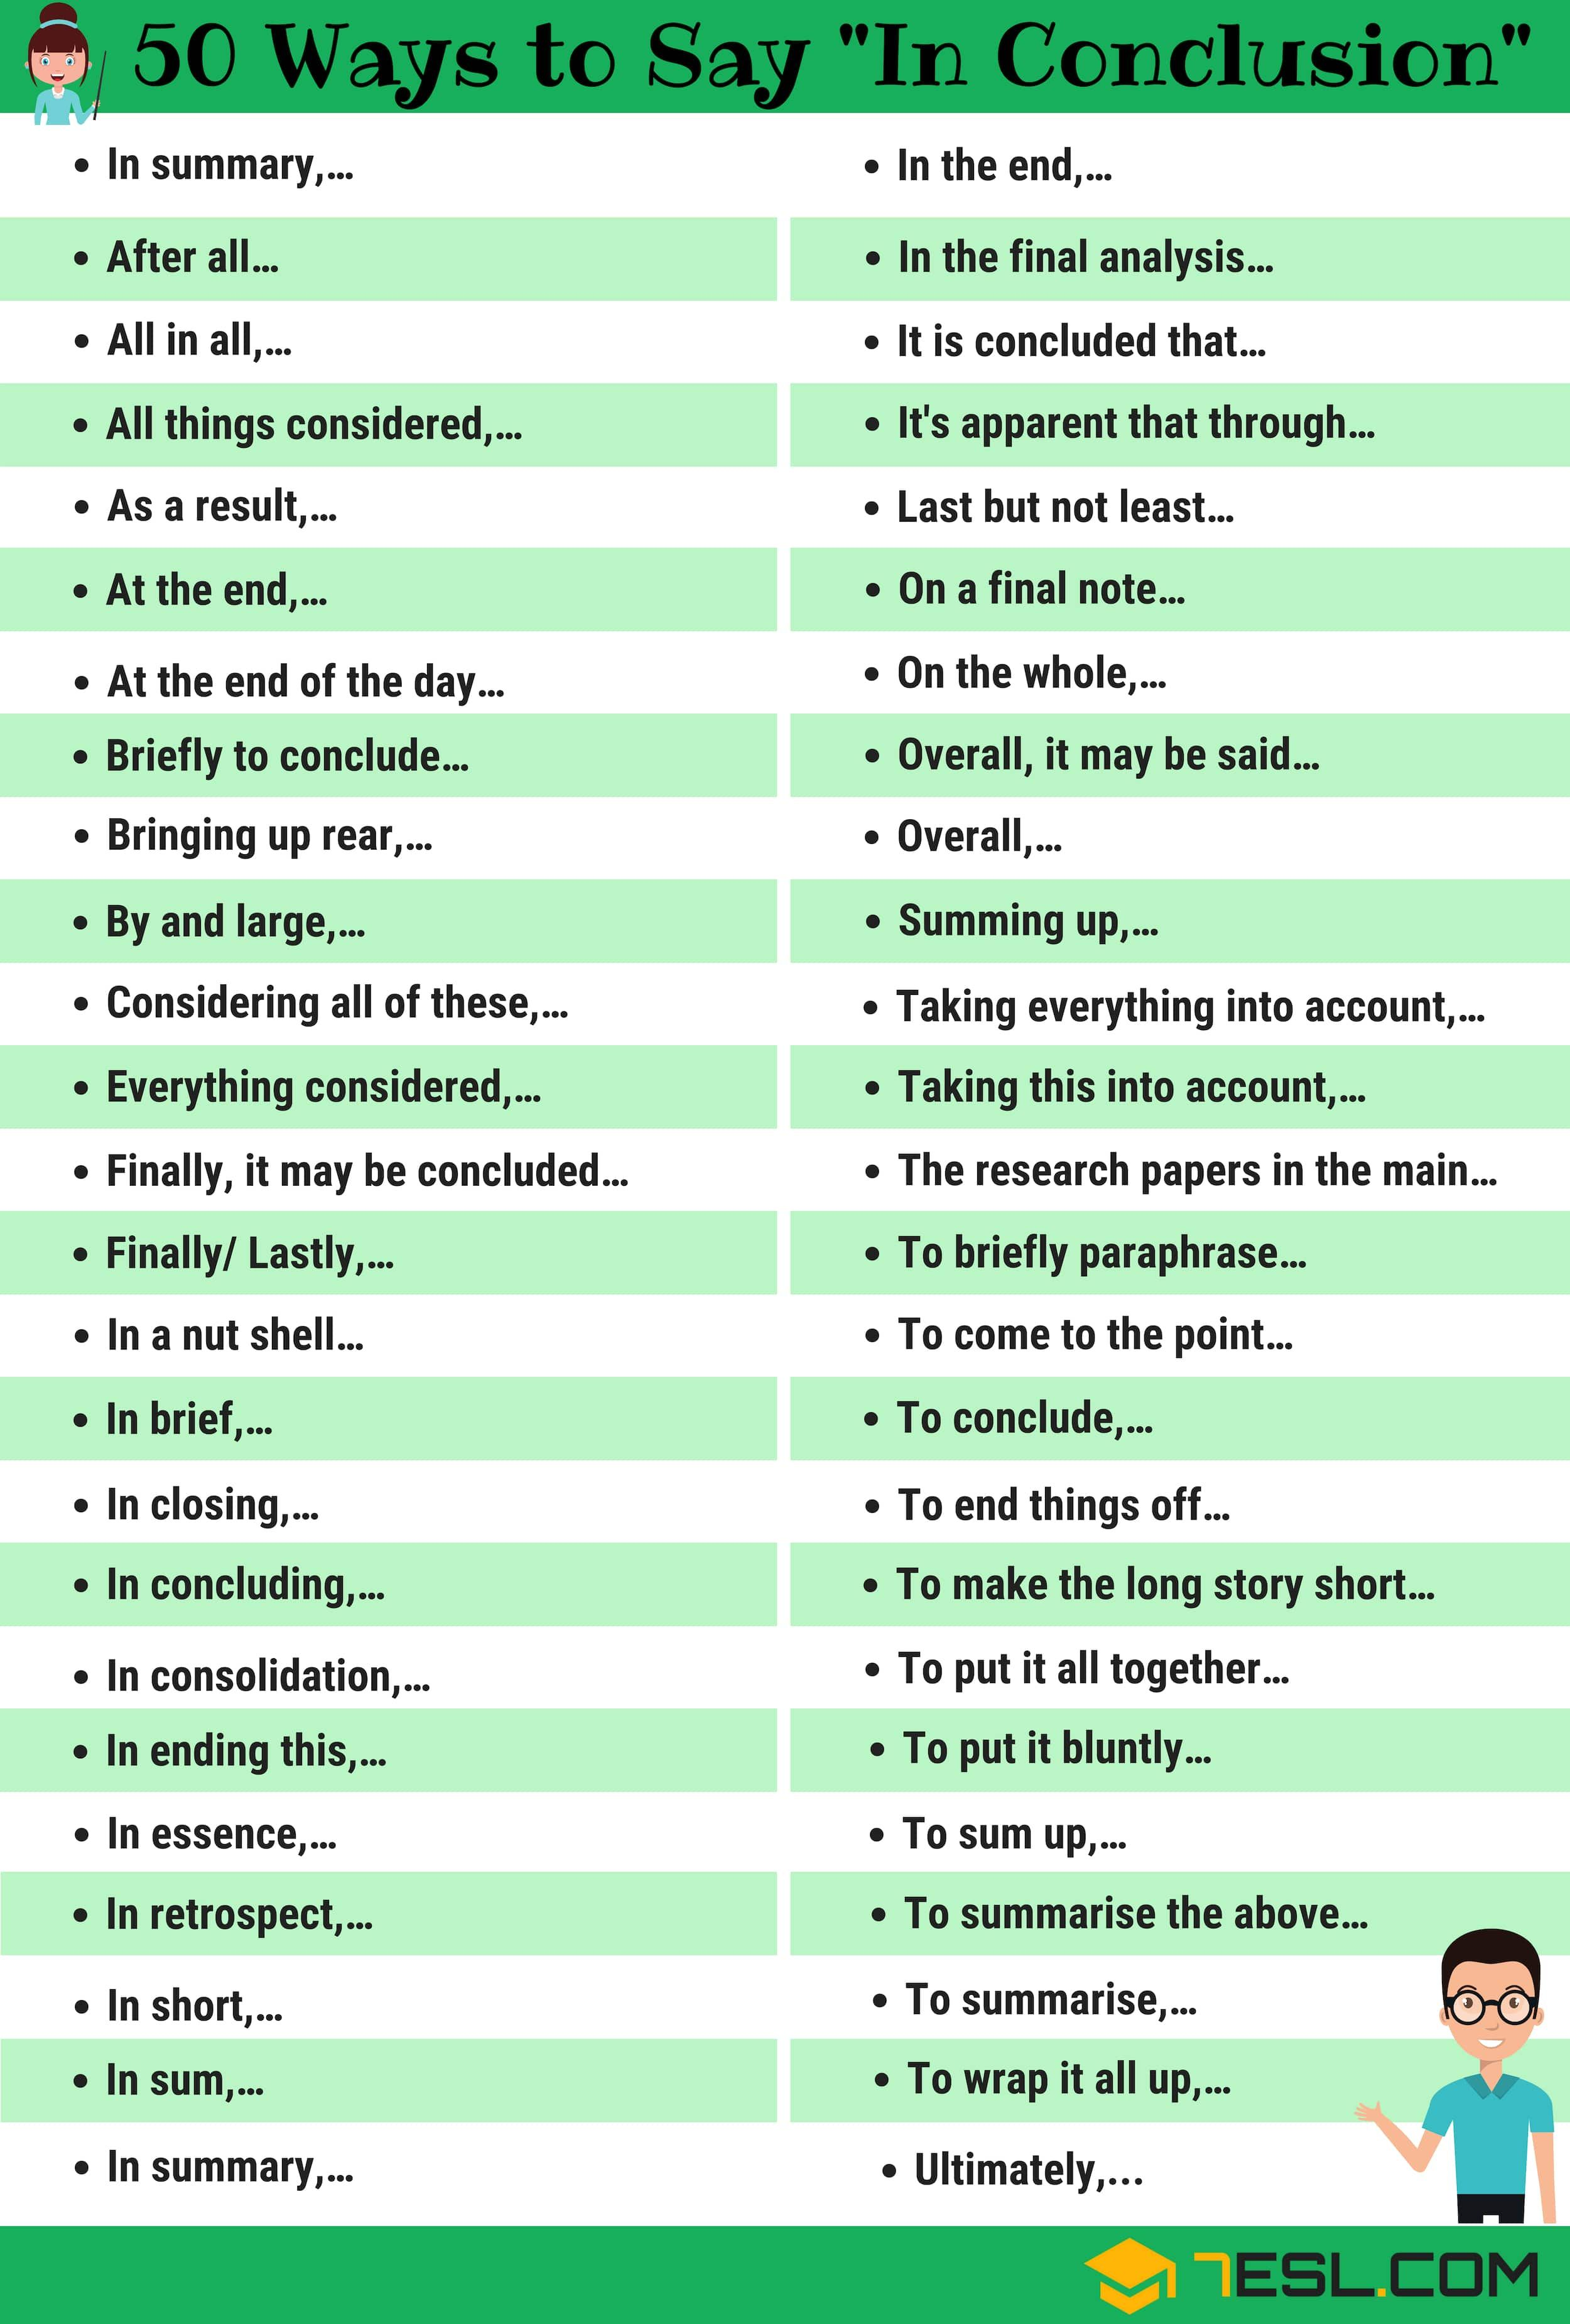 50 Other Ways To Say In Conclusion In Writing In Conclusion Synonym 7esl Essay Writing Skills English Vocabulary English Writing Skills